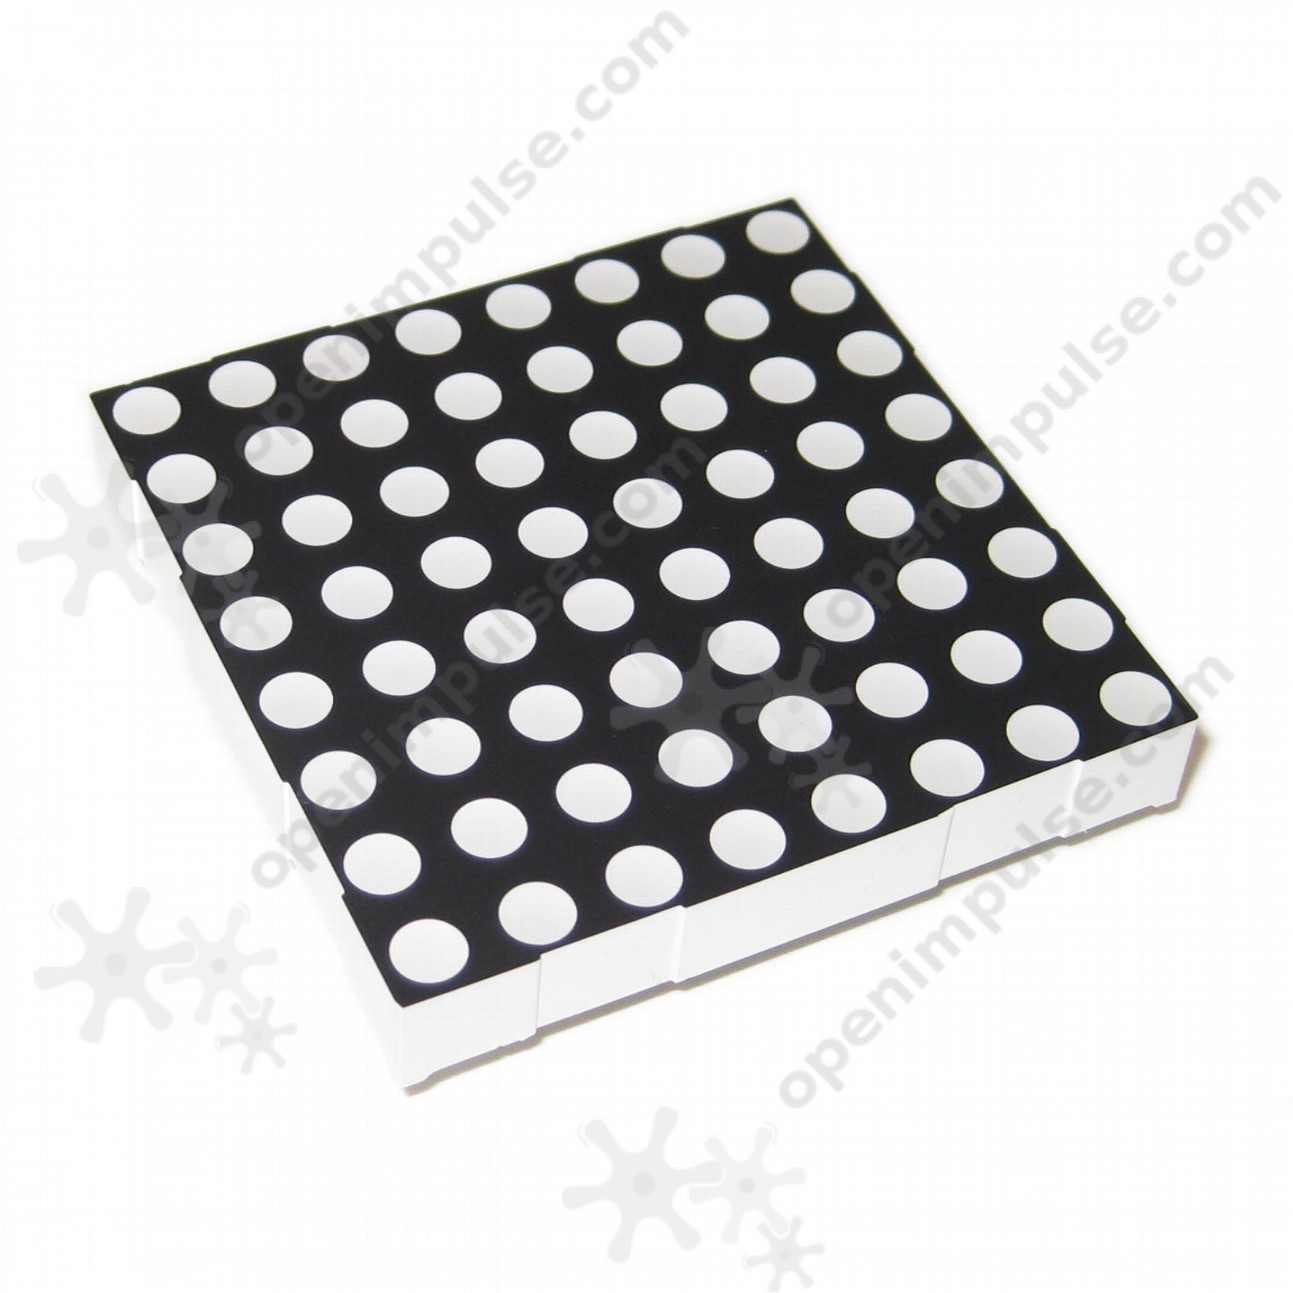 8x8 Red LED Matrix